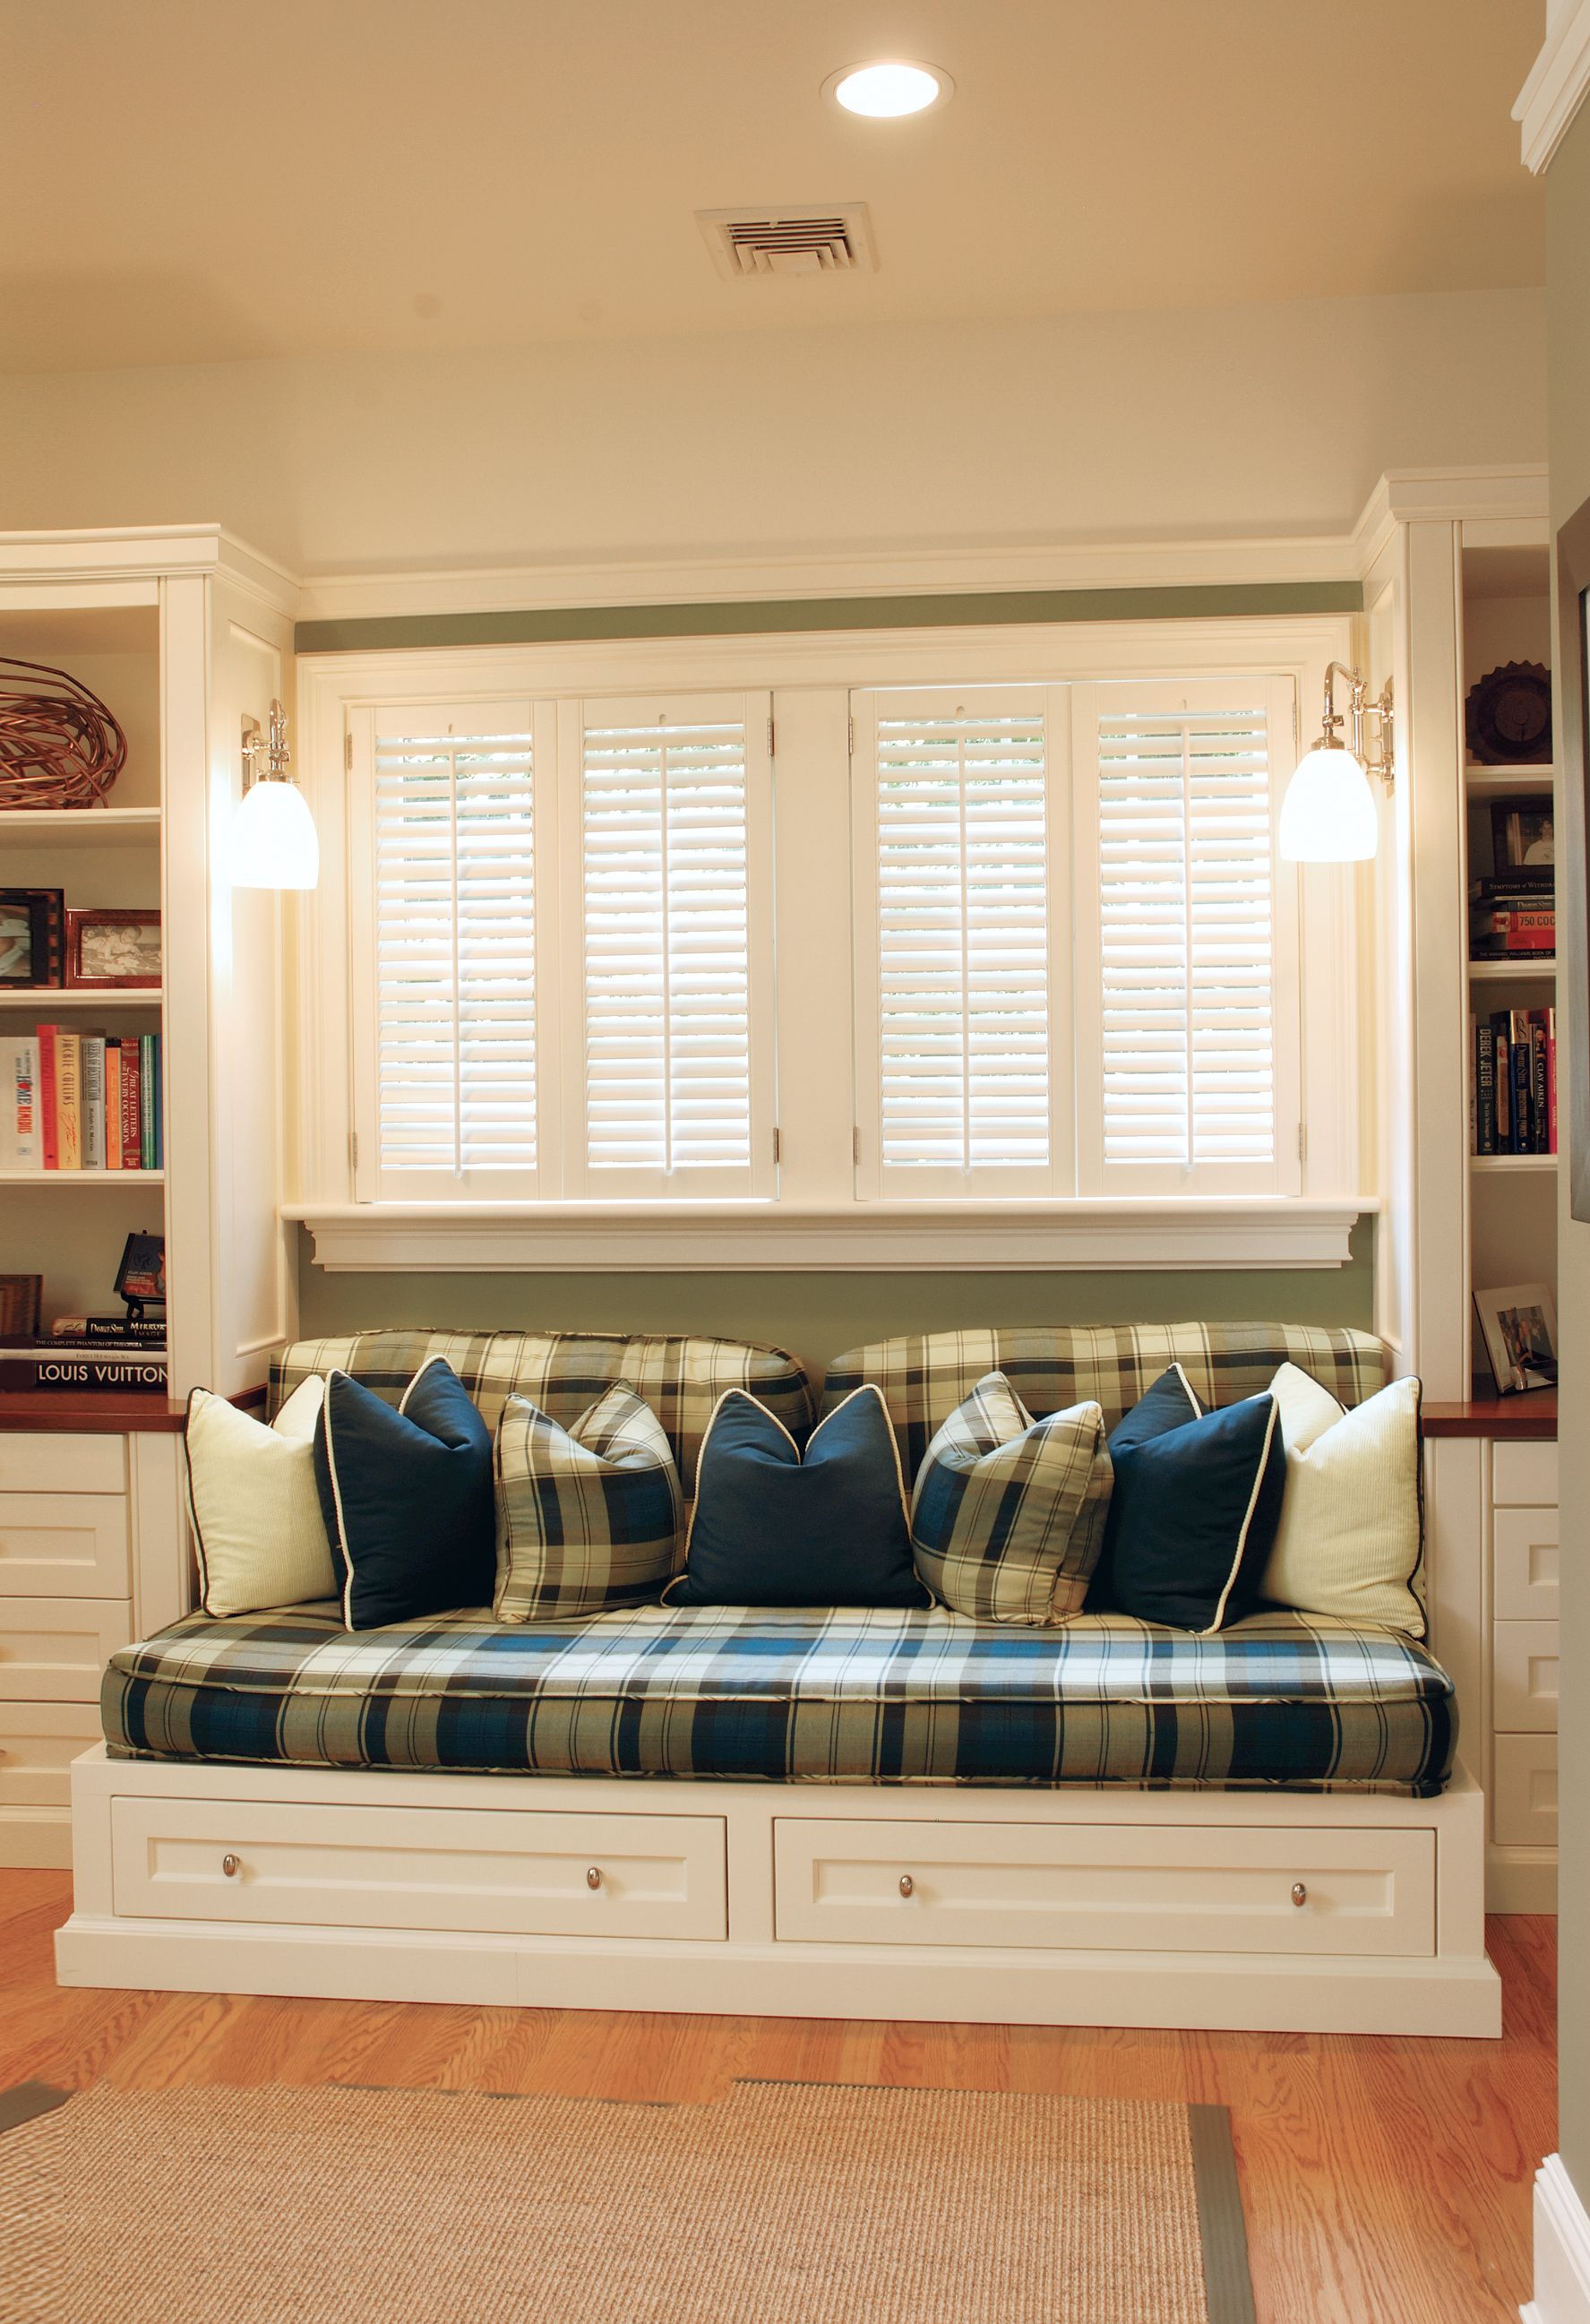 Sitting Pretty Sofas Donnell Granite Sofa Reviews Window Seat 30 Inspirational Ideas For Cozy